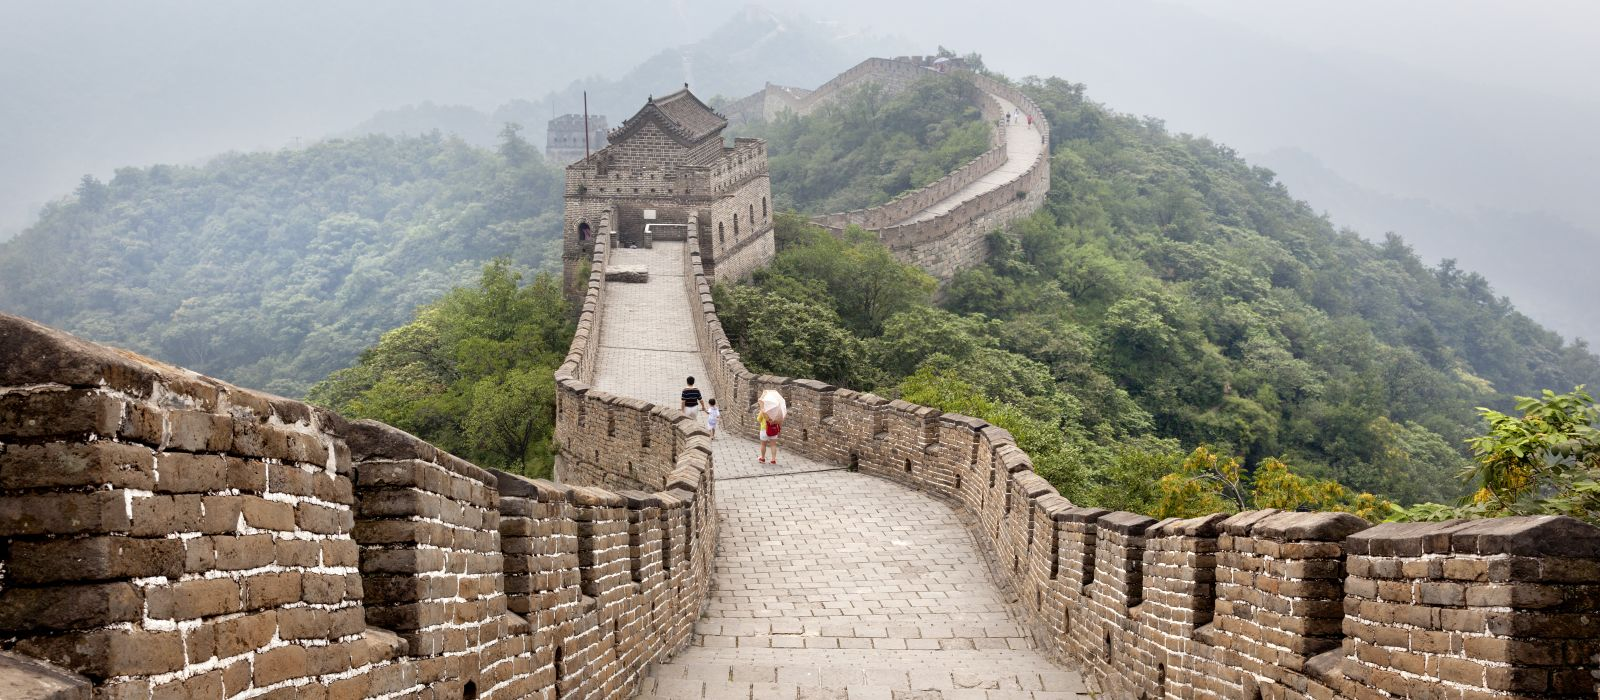 China for Families: Heritage Cities, Landscapes & Beach Tour Trip 3